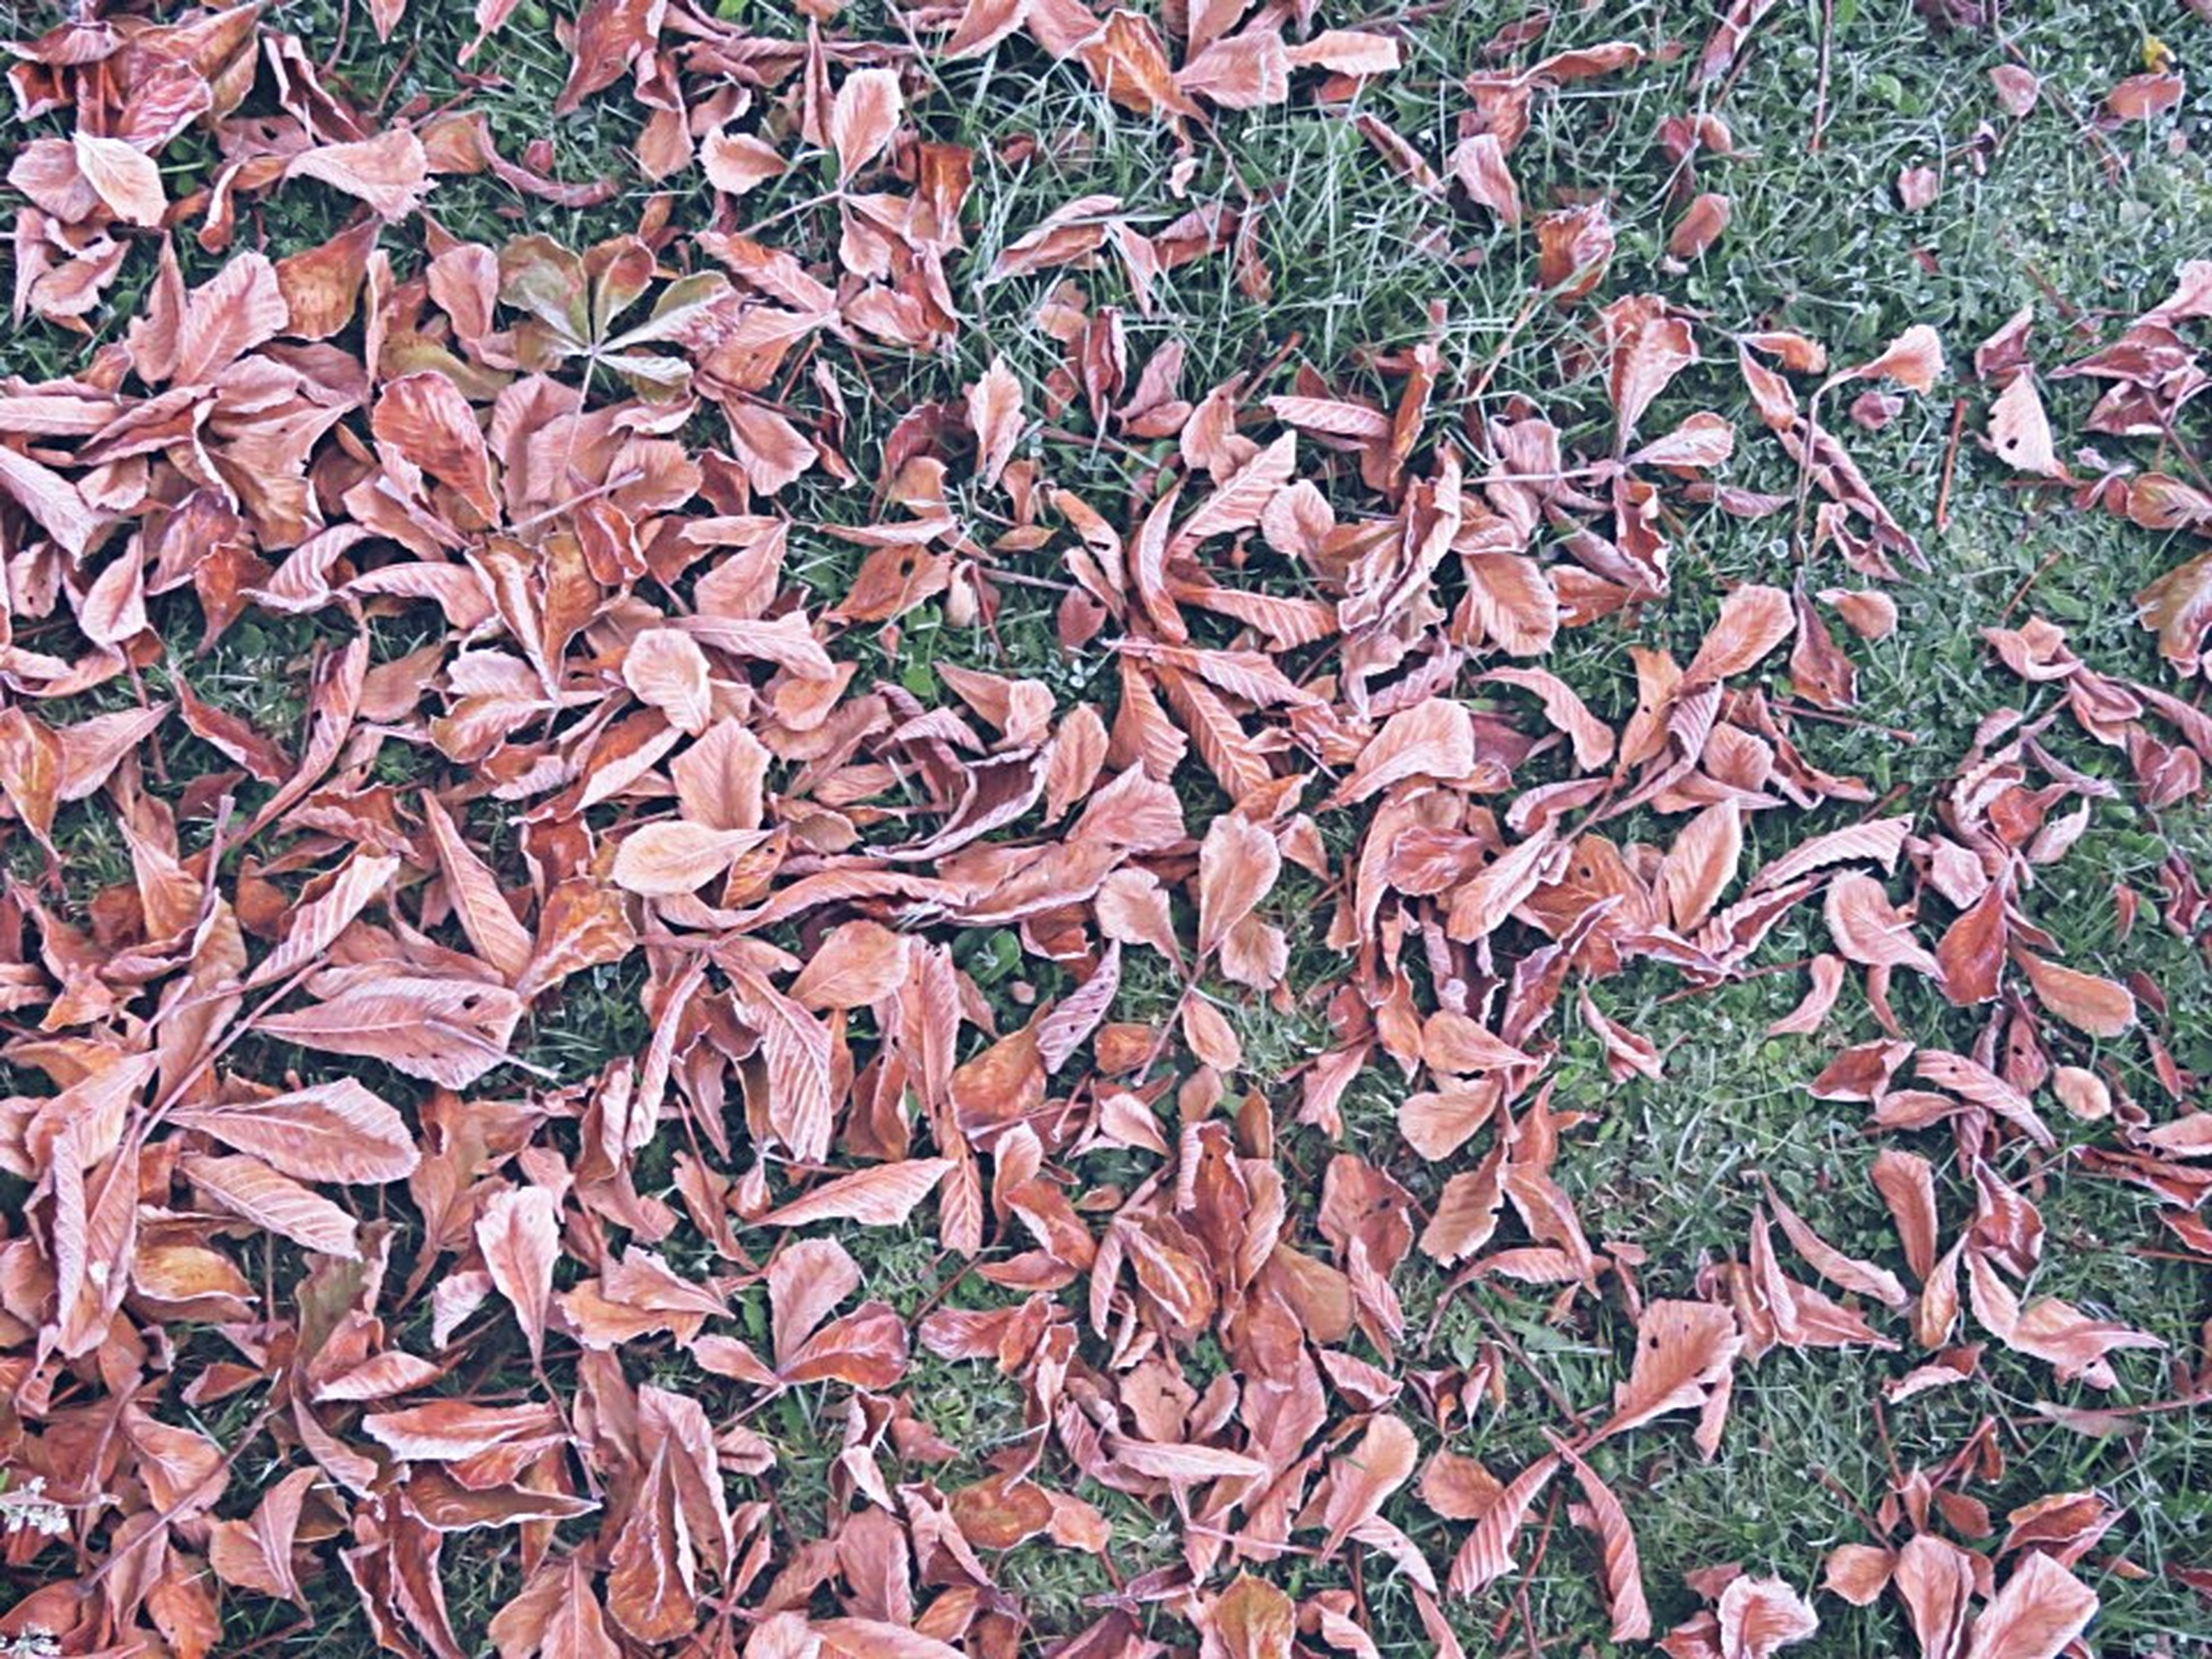 autumn, full frame, backgrounds, leaf, change, abundance, high angle view, dry, leaves, fallen, red, season, large group of objects, textured, day, outdoors, nature, field, no people, close-up